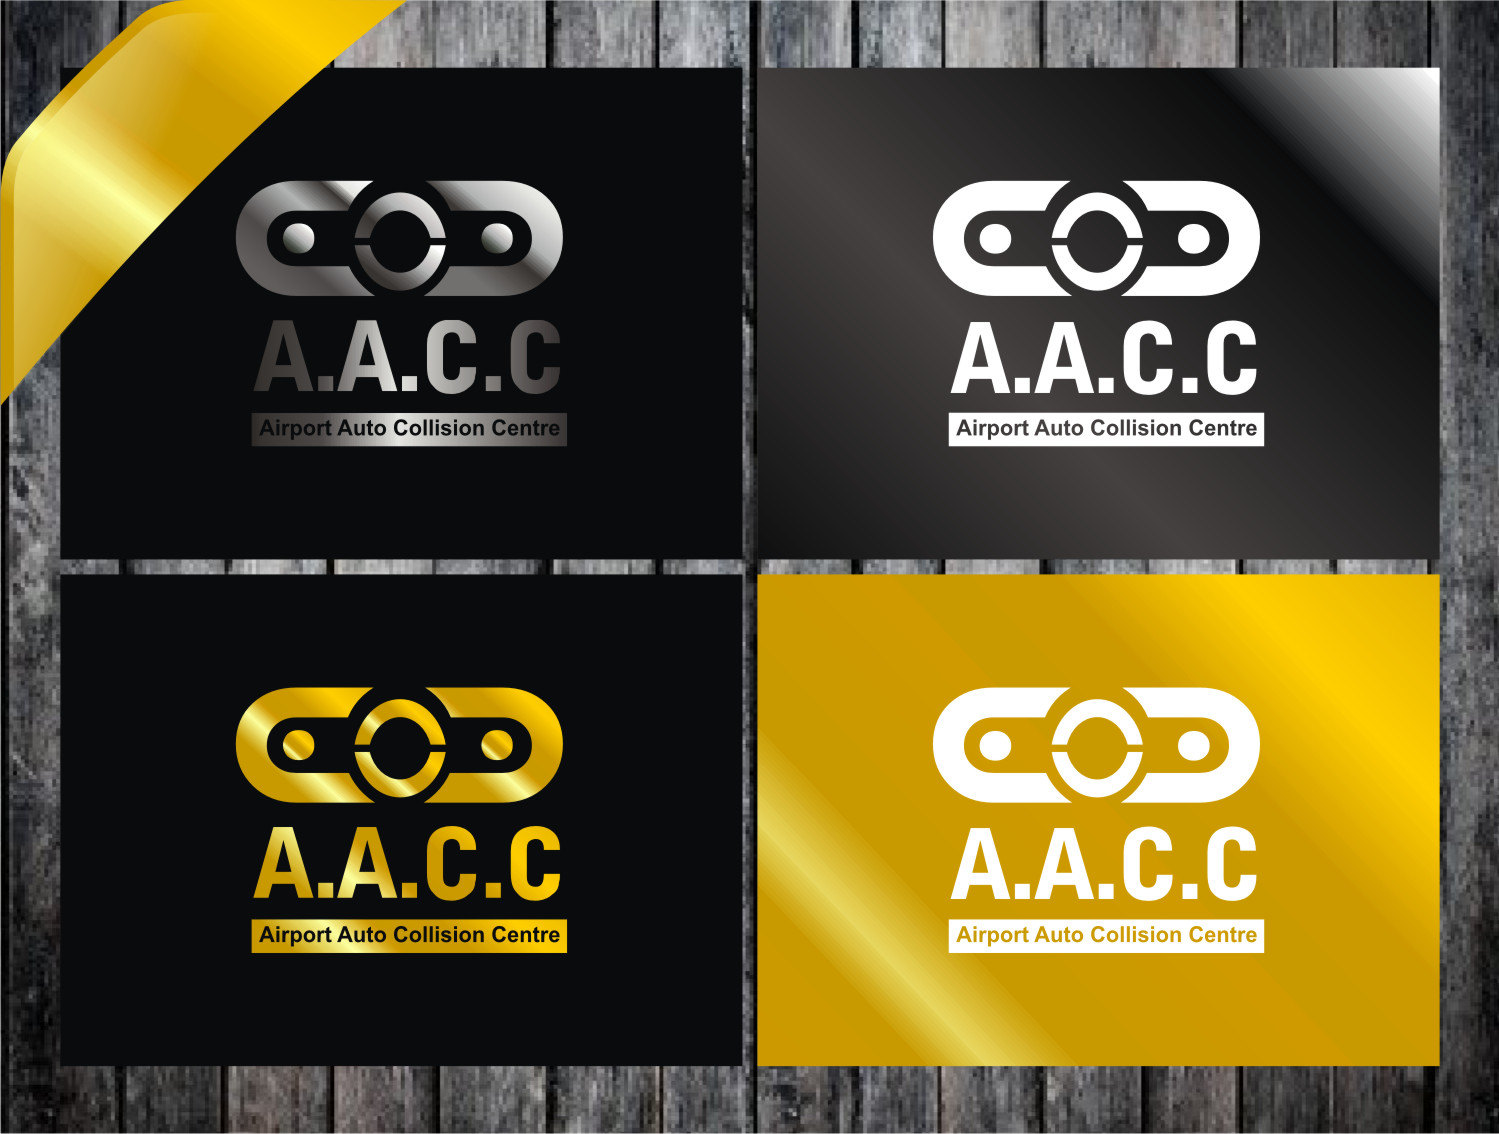 Serious Modern Automotive Logo Design For A A C C Airport Auto Collision Centre We Come Highly Wreck Amended By Ramfau Design 12322282